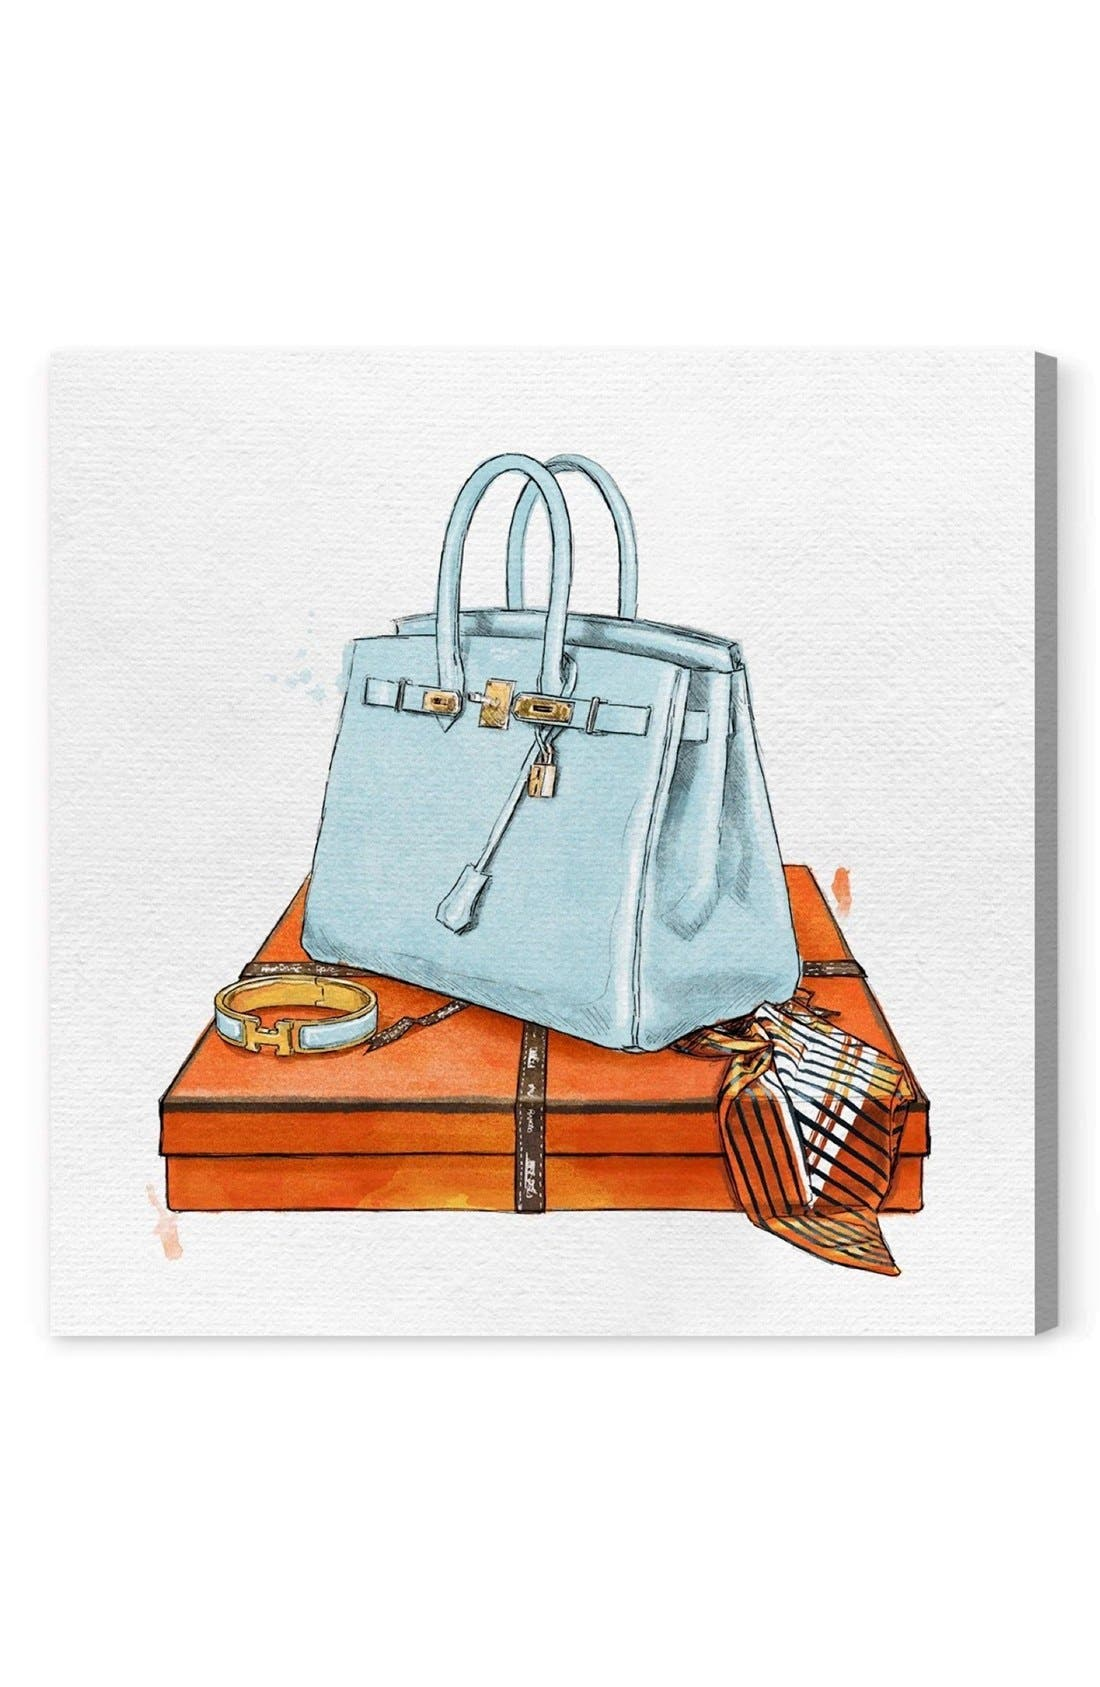 Alternate Image 1 Selected - Oliver Gal My Bag Collection I Canvas Print